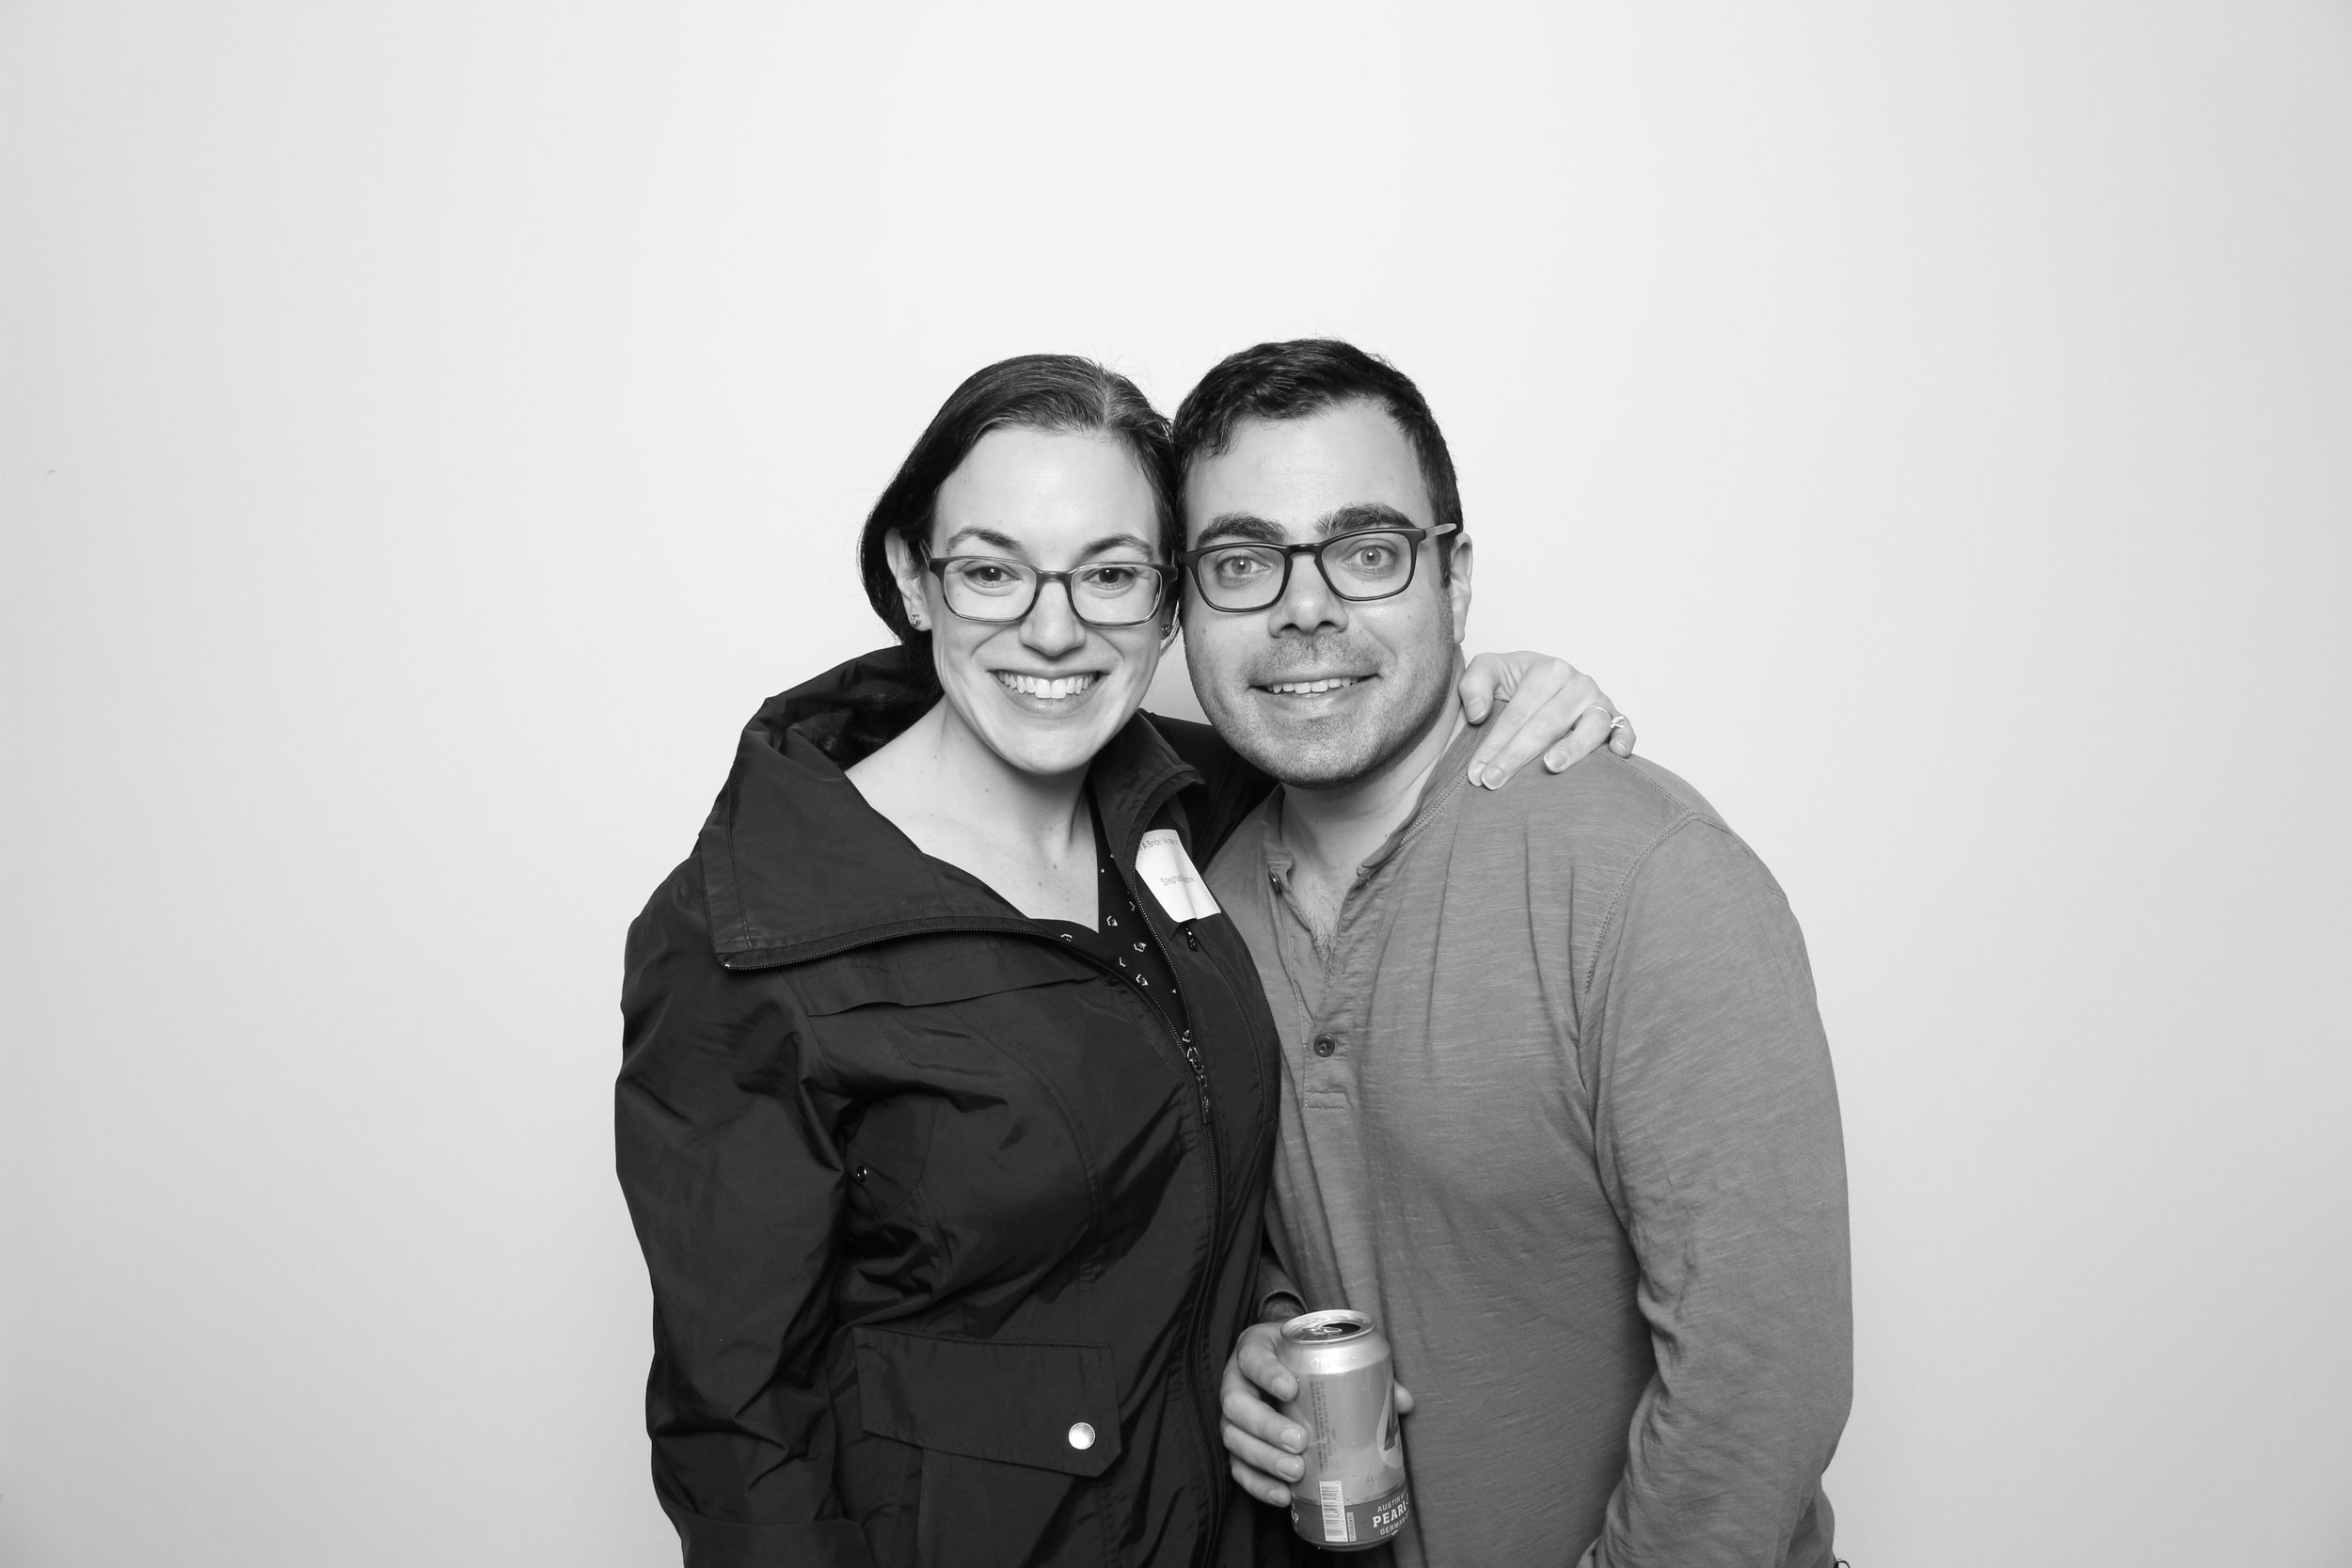 austin photo booth rental wedding sxsw corporate party holiday party9.jpg